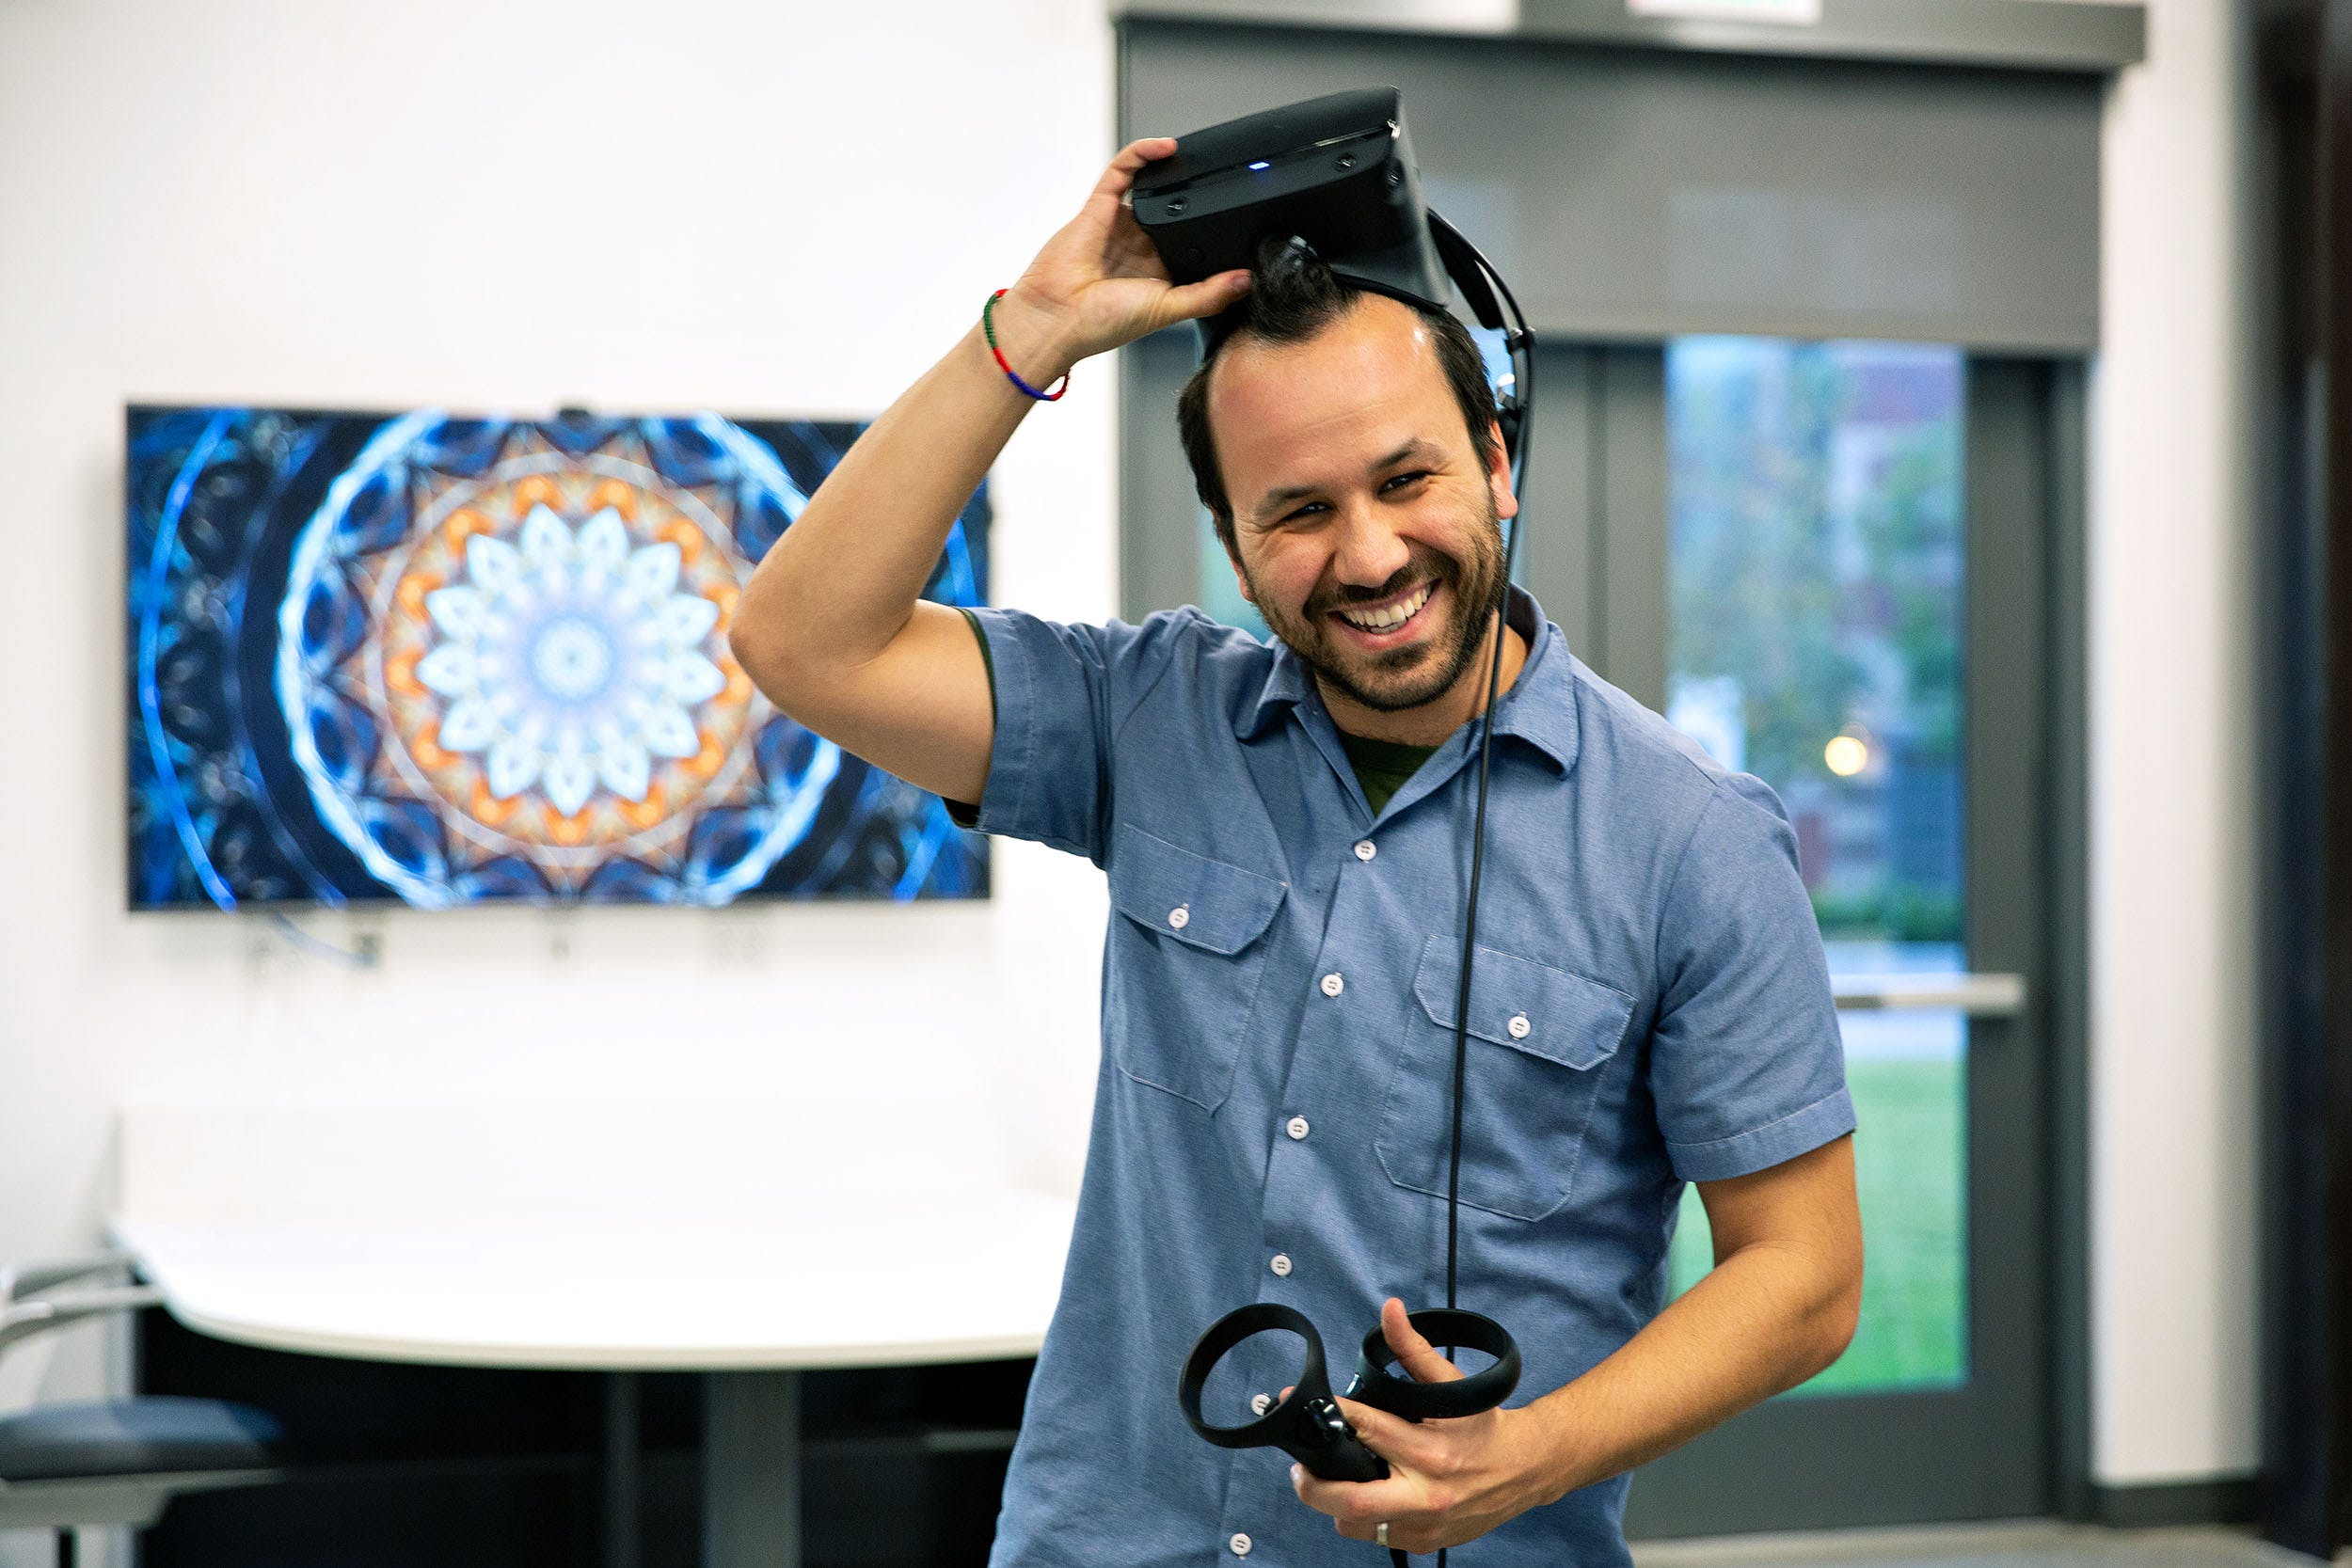 Smiling male taking off VR goggles